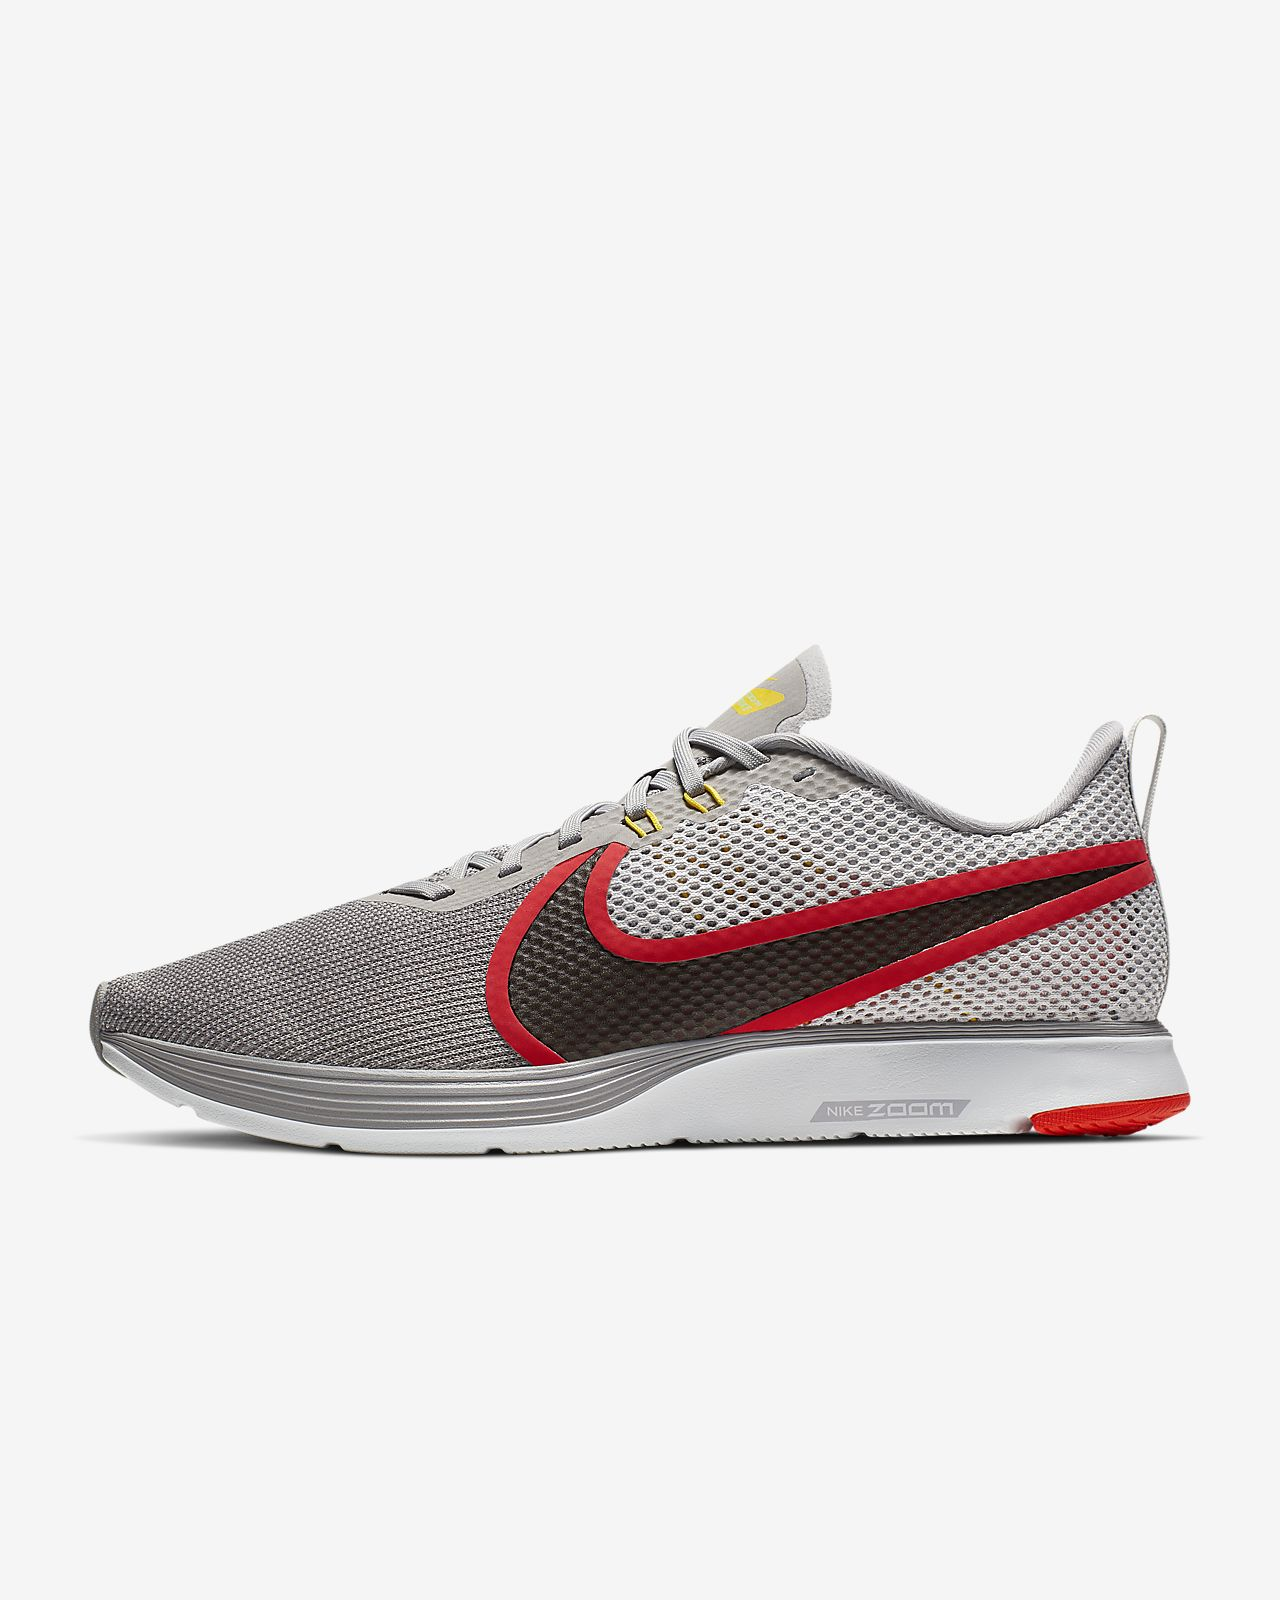 a1bc3bc2b1d7 Nike Zoom Strike 2 Men s Running Shoe. Nike.com AU